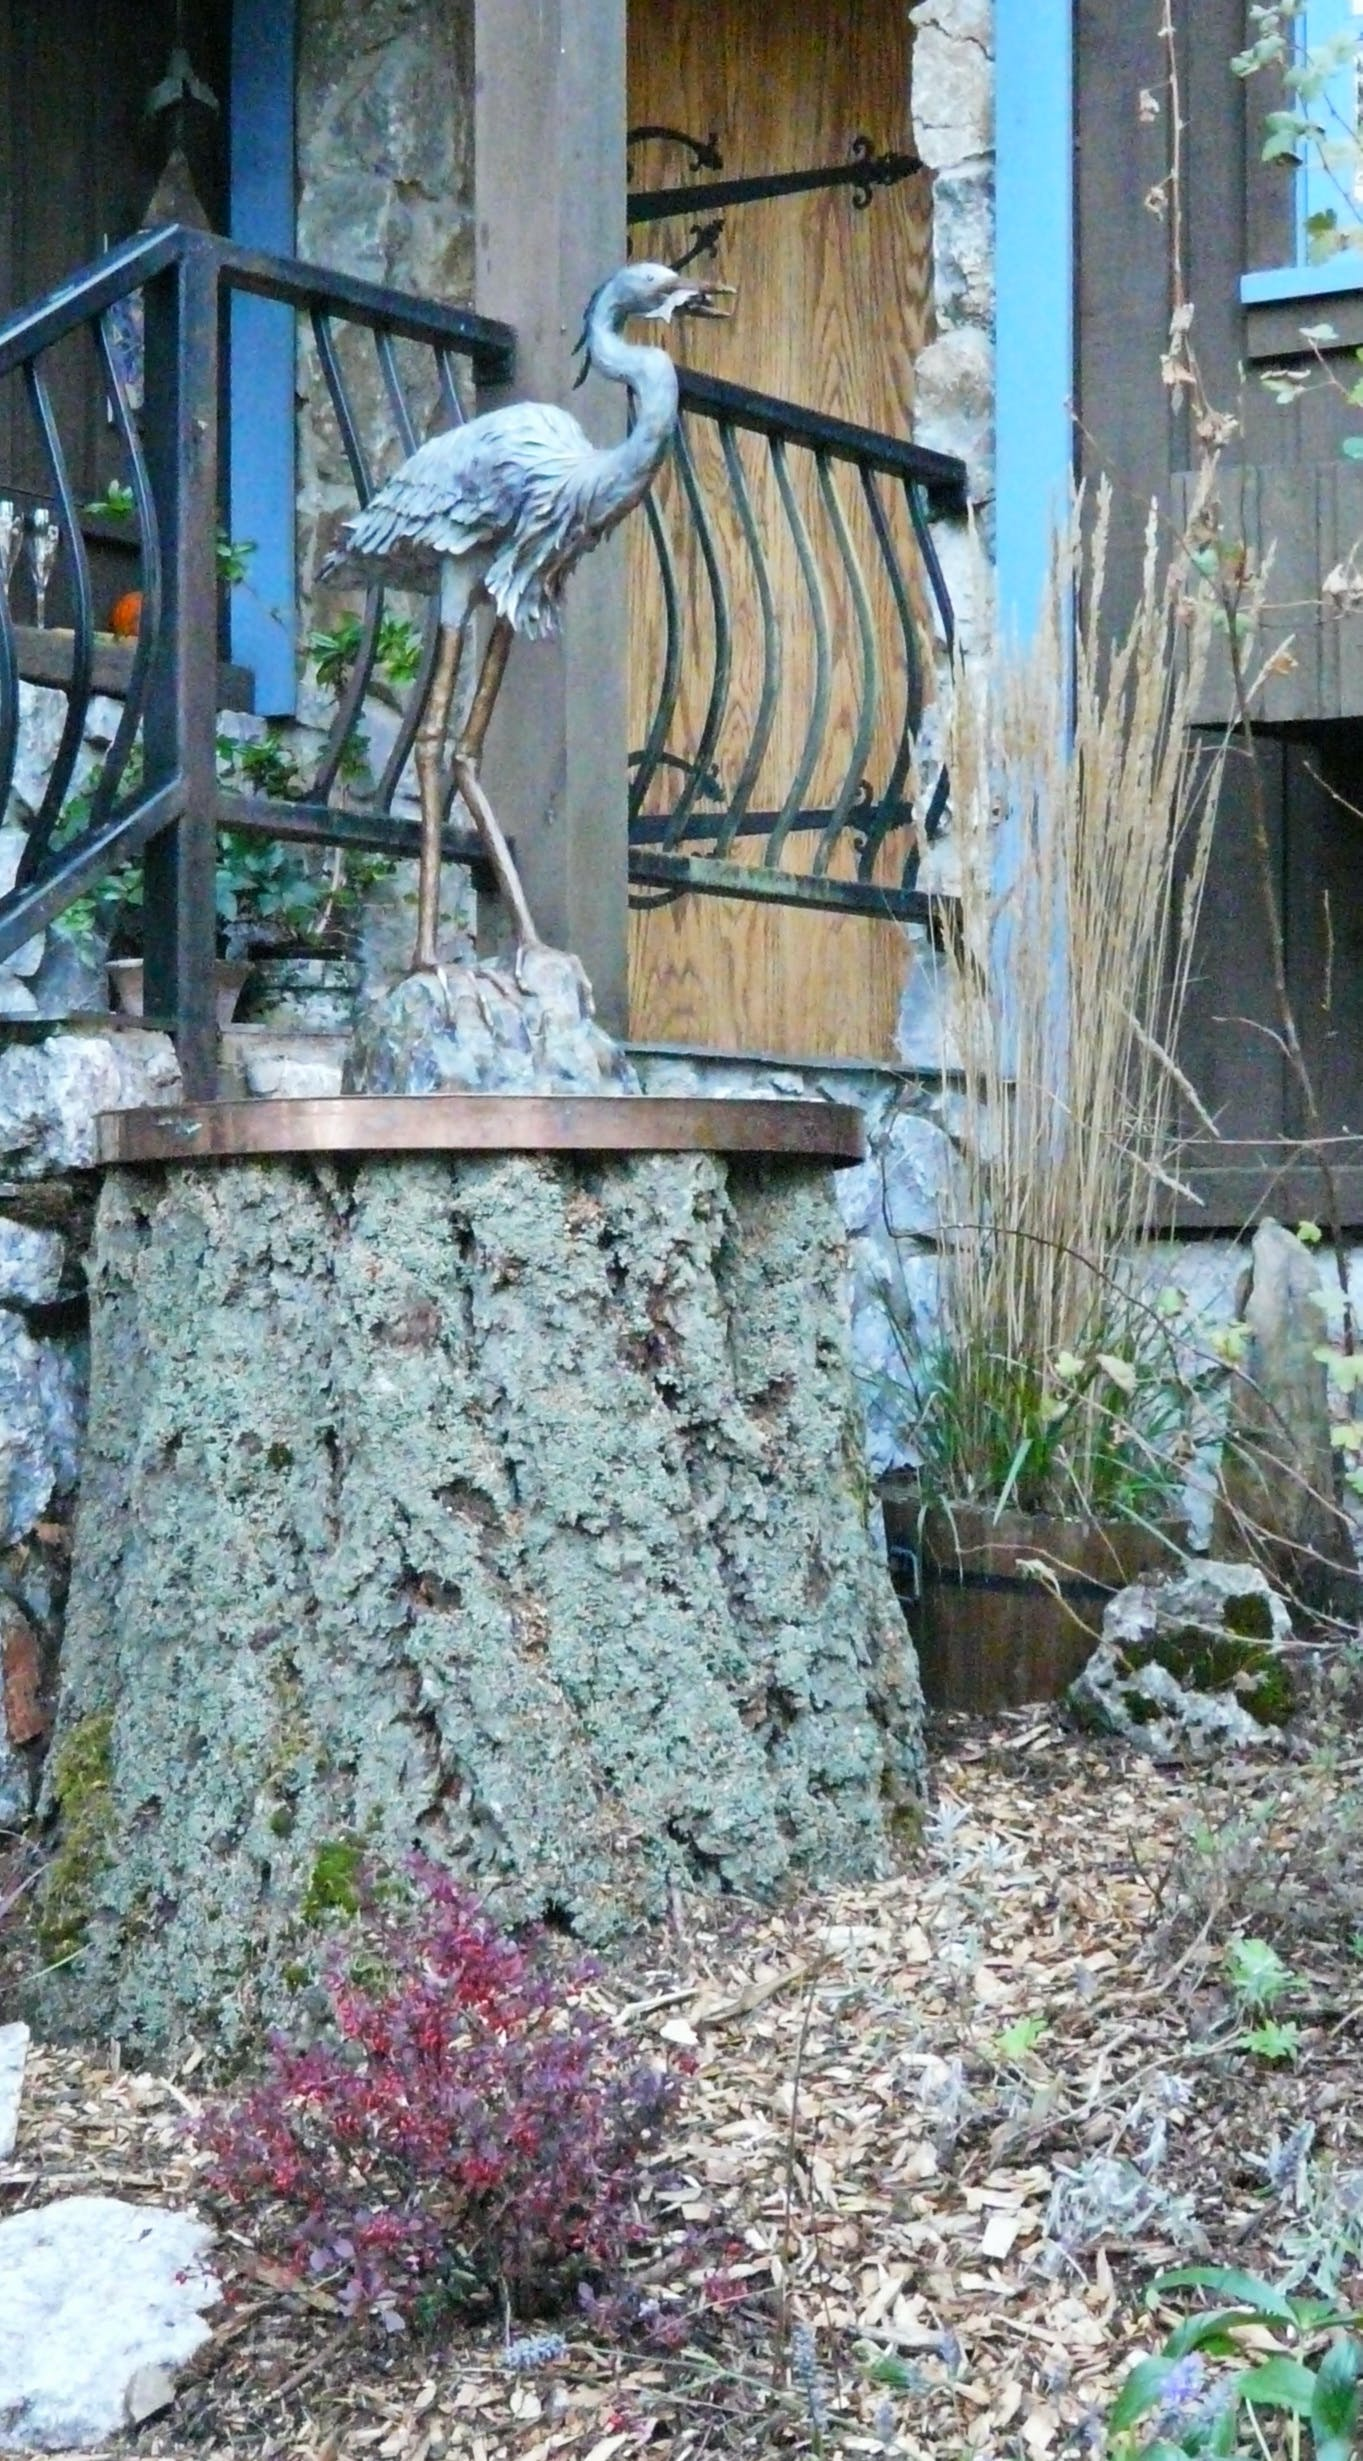 What to do with a dead stump by your main entrance...